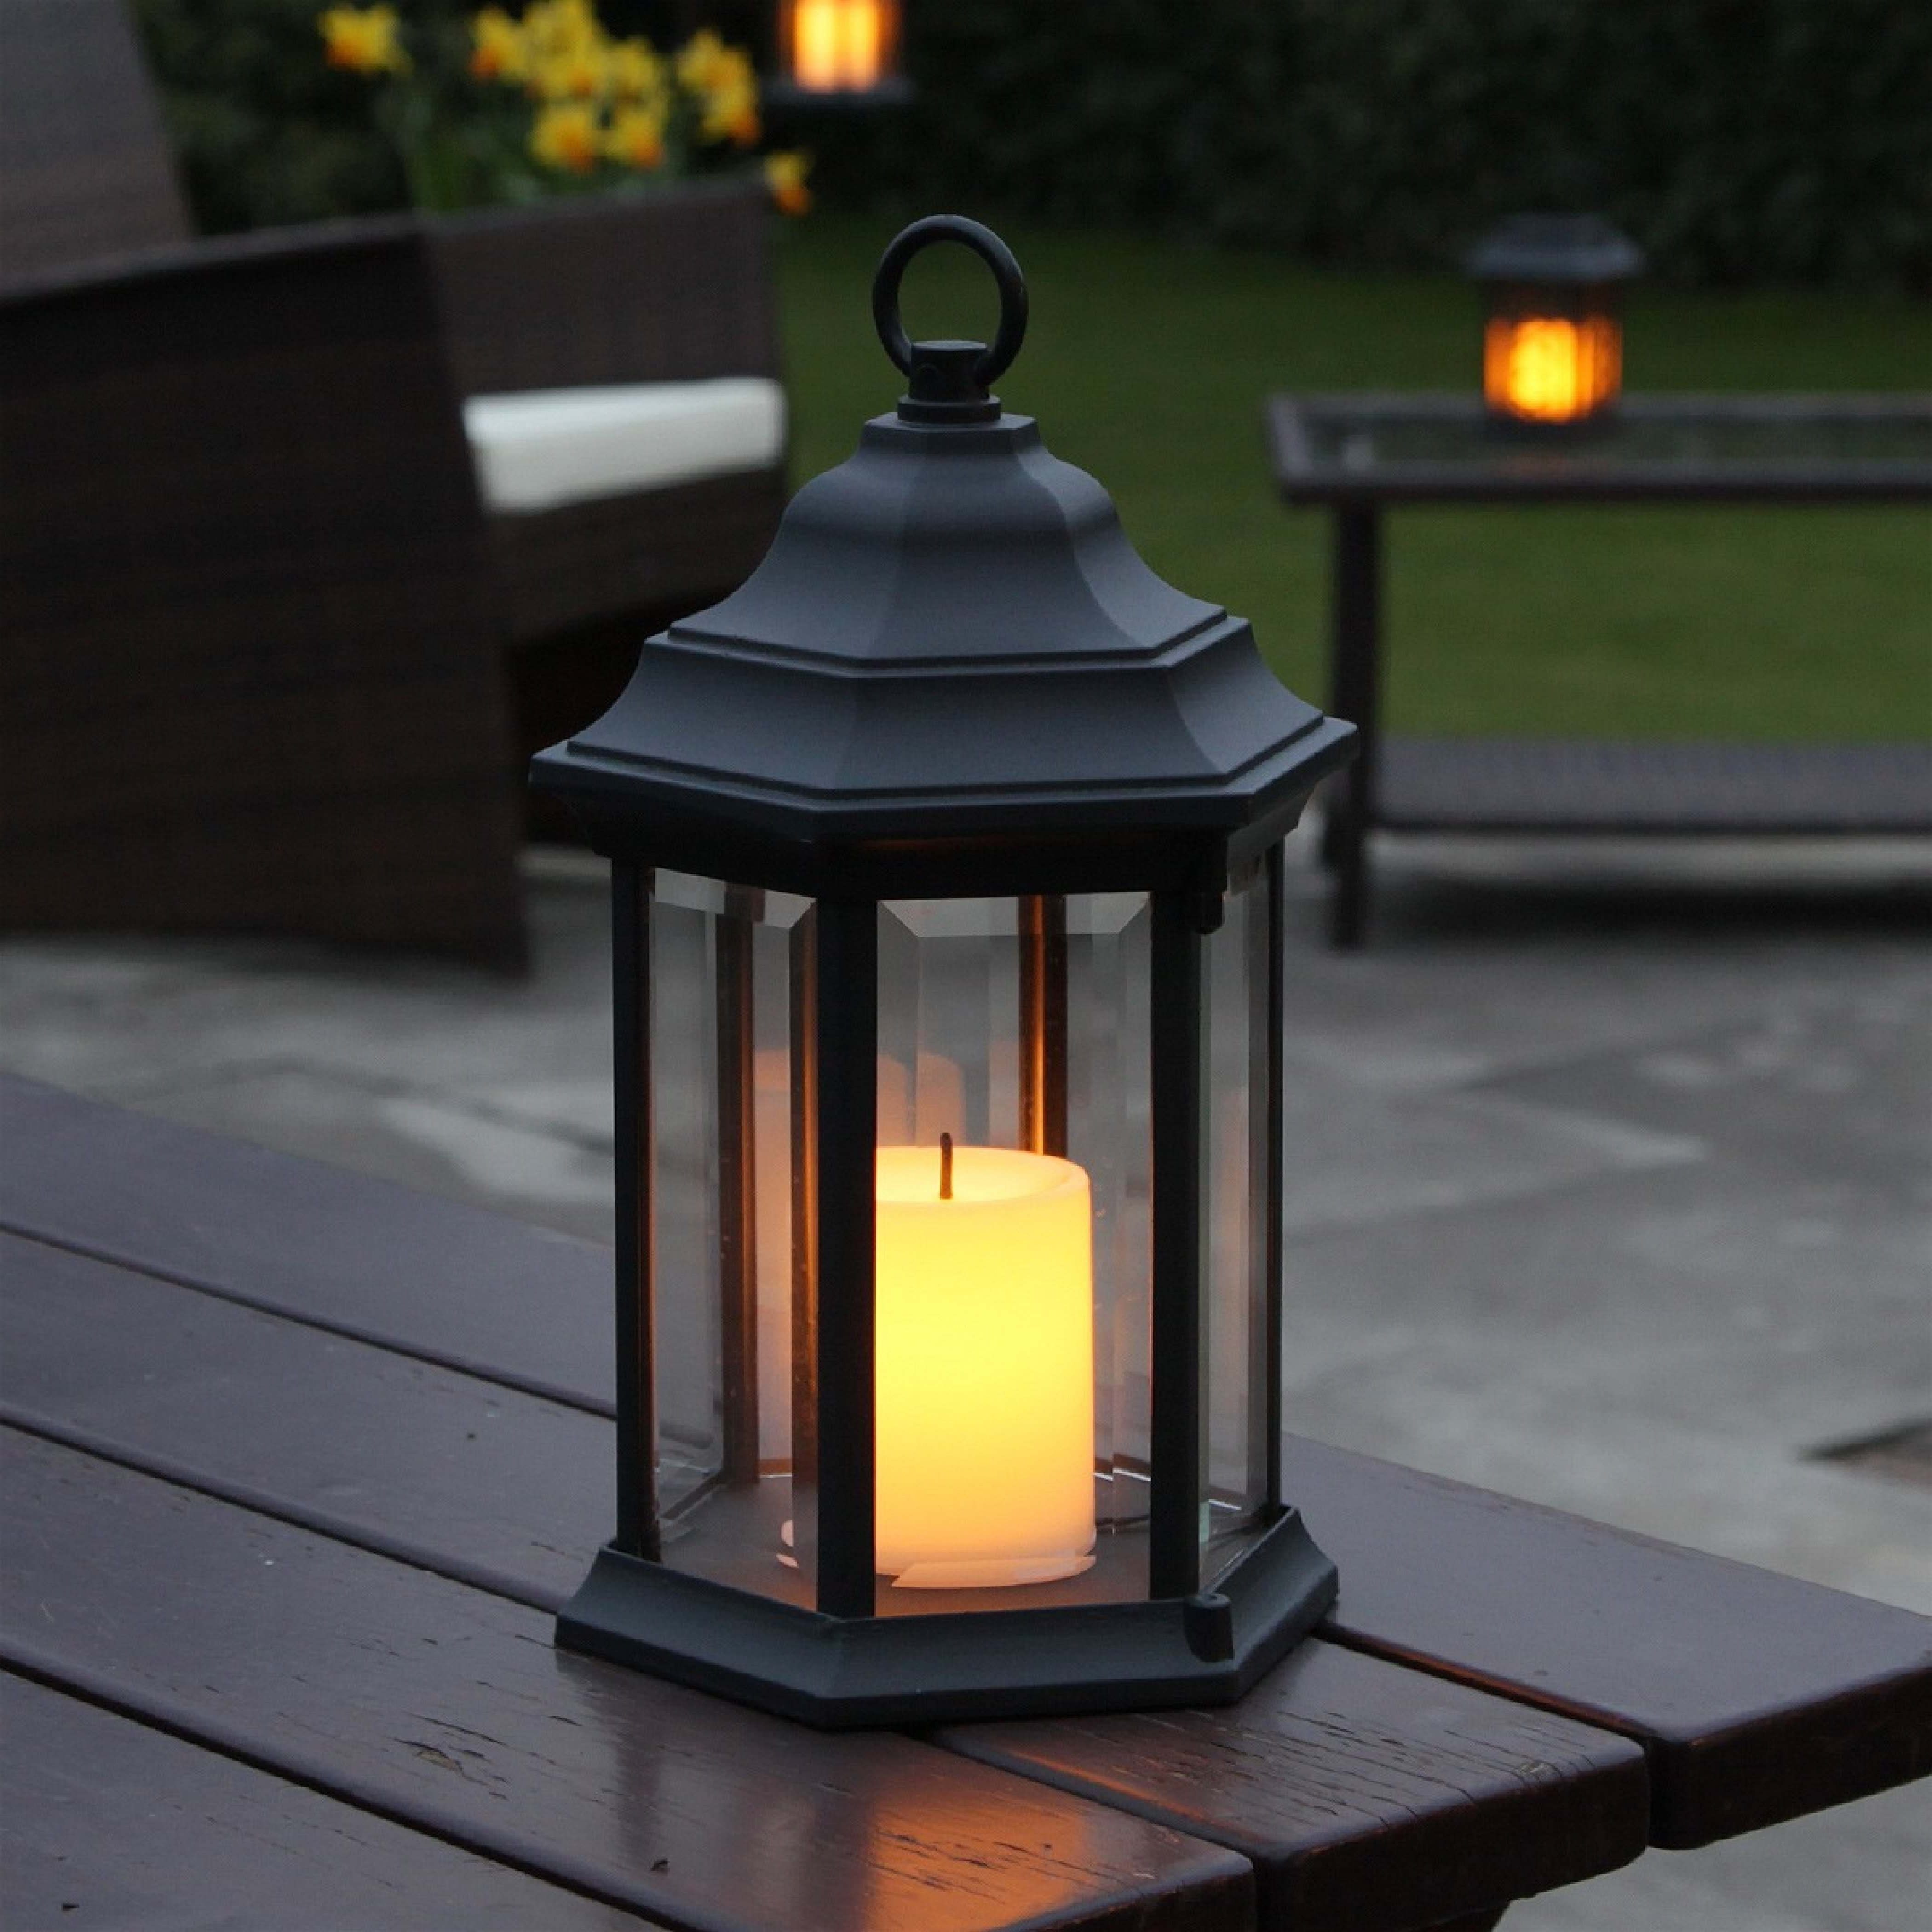 Outdoor Lanterns With Timers Regarding Preferred Outdoor Lanterns With Timers (Gallery 8 of 20)